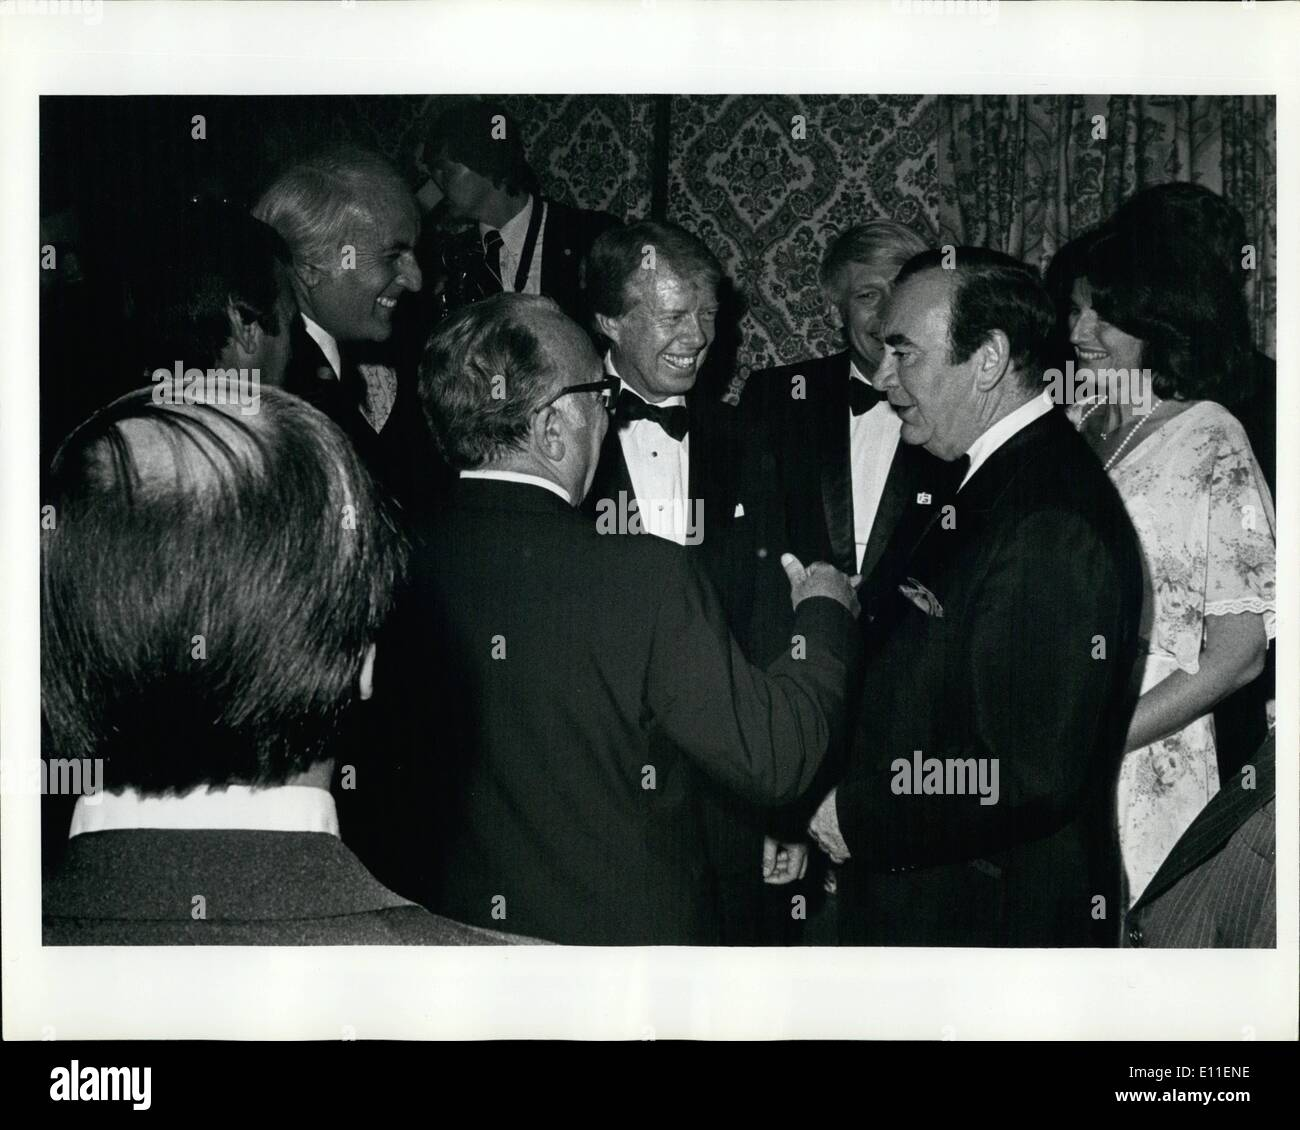 Jun. 06, 1977 - Grand Ballroom Of The Waldorf Astoria Hotel, New York City: President Carter Attended A 000,00 A Plate Fundraiser This Evening Sponsored By The Democratic National Committee. Photo shows President Carter Being Introduced To Various New York Democratic Fat Cats By New York Governor Hugh Carey. - Stock Image